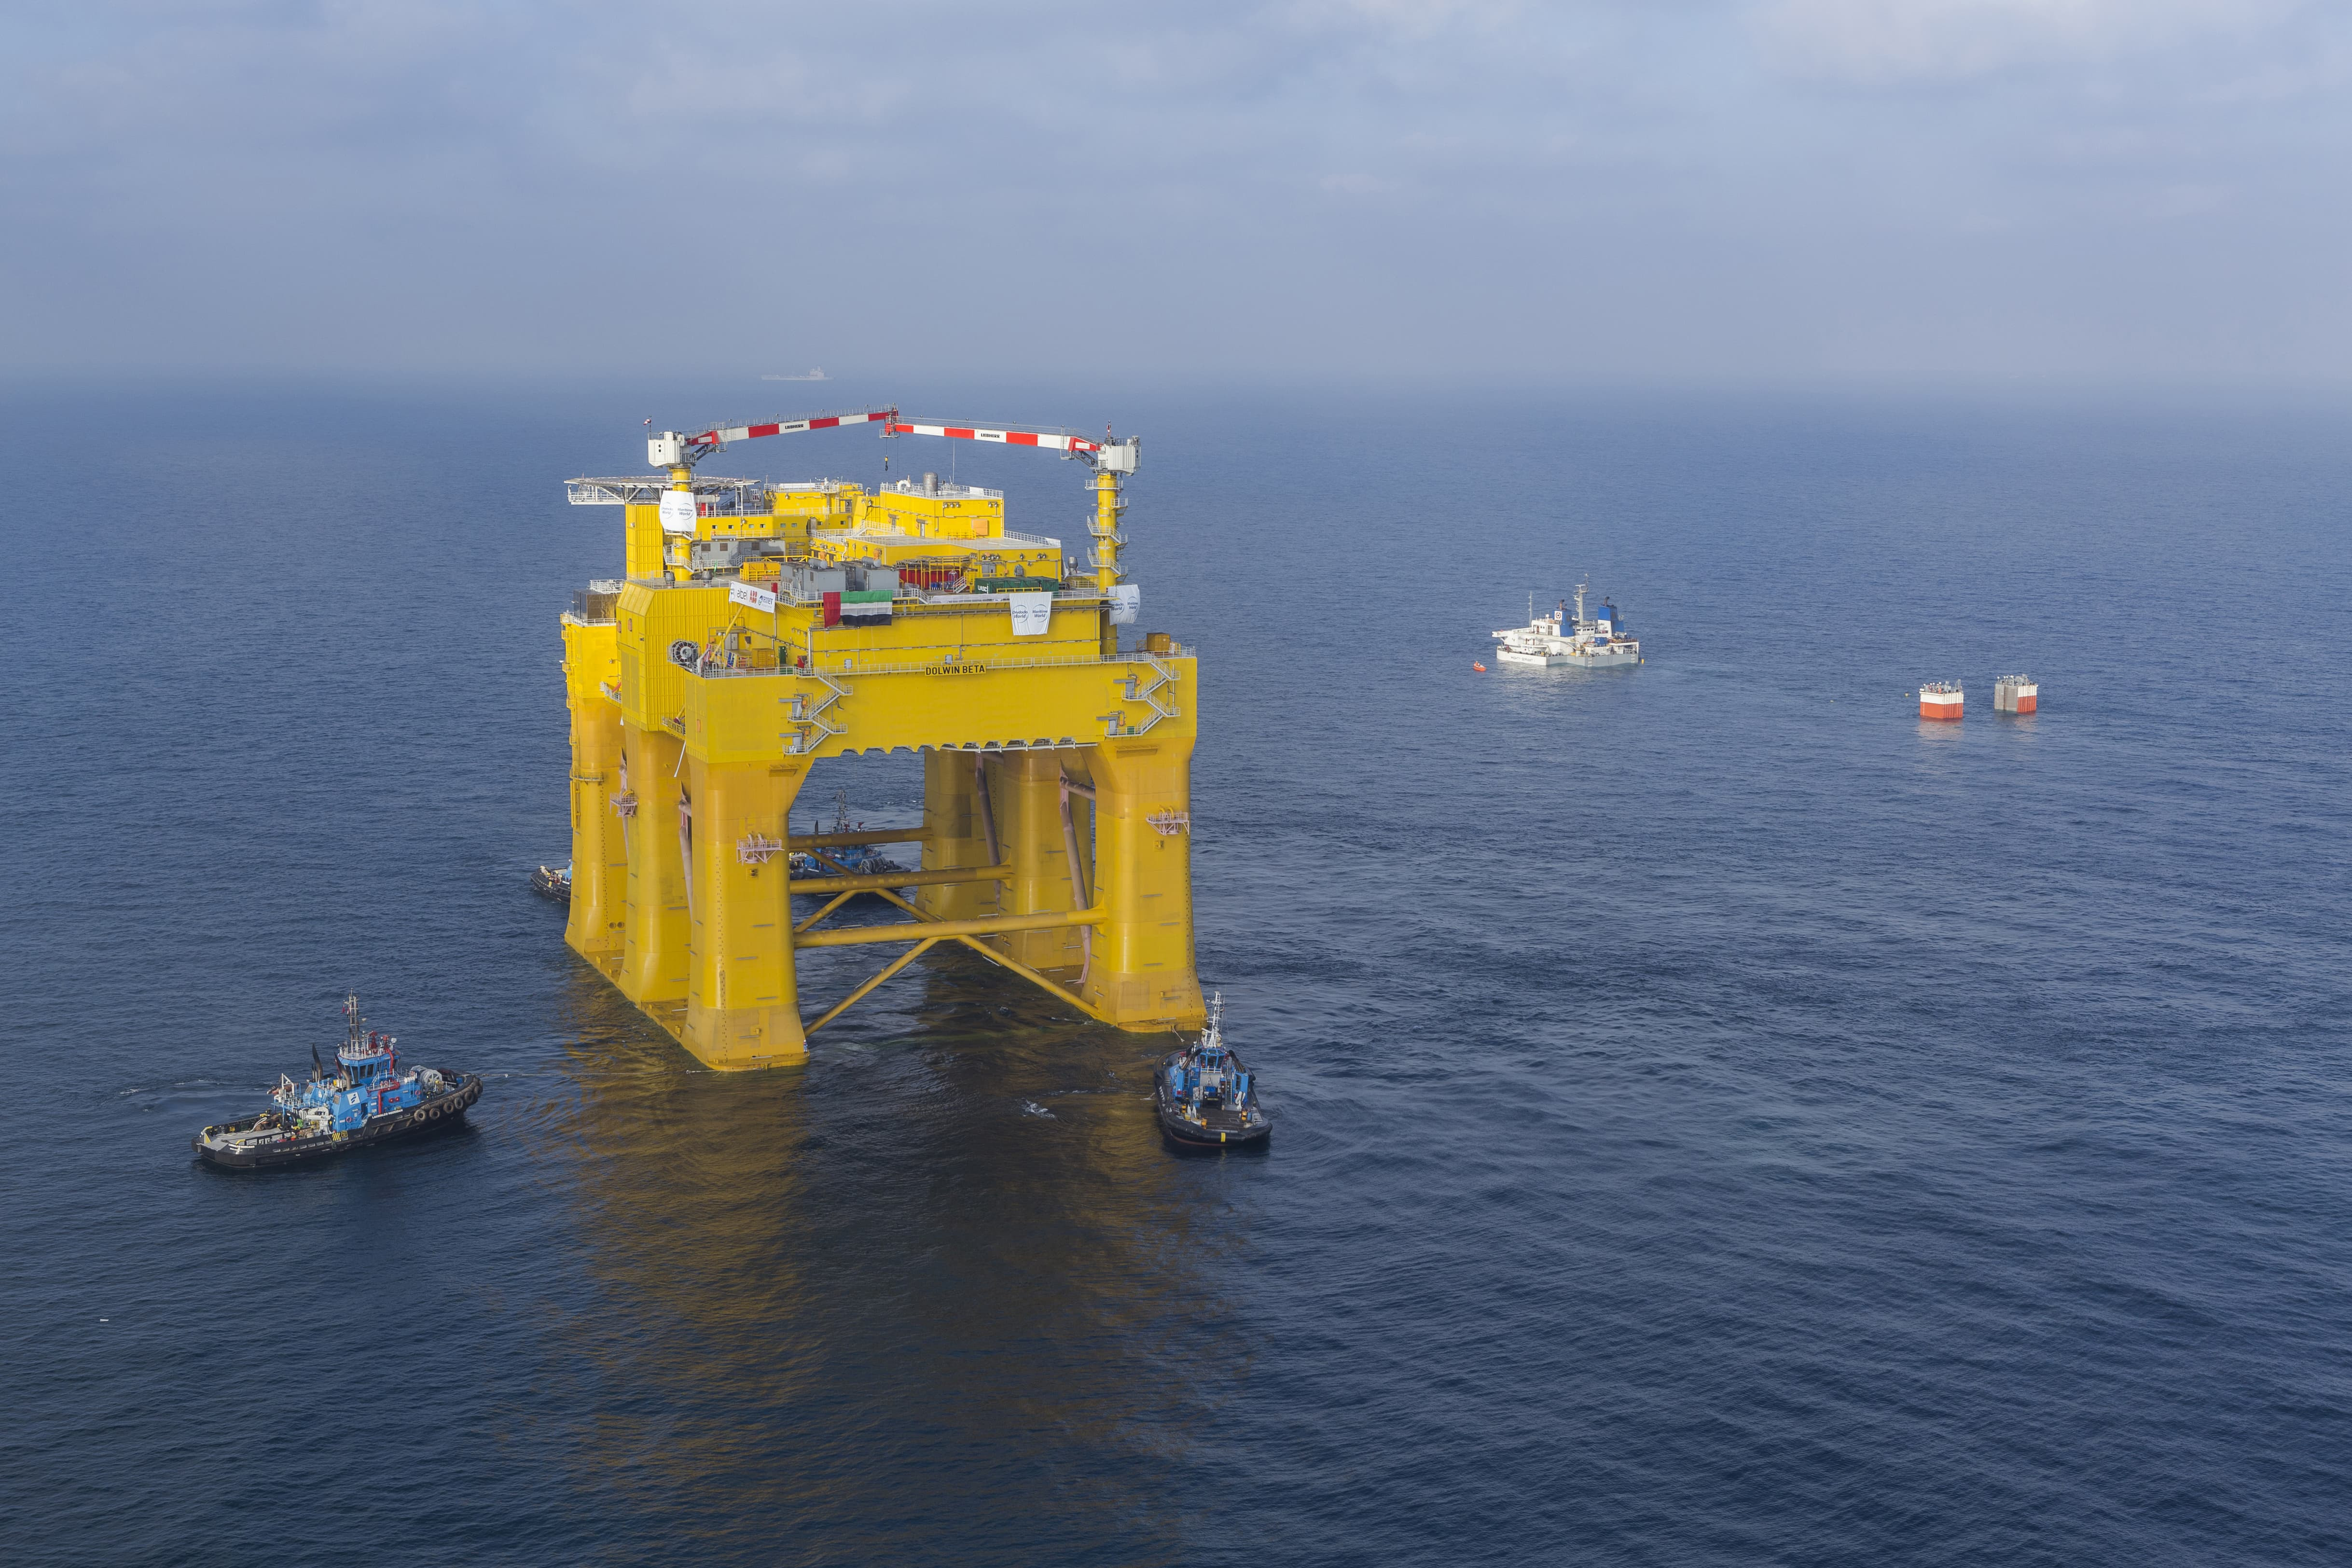 The submerged Mighty Servant 1 is ready to load the platform in Dubai